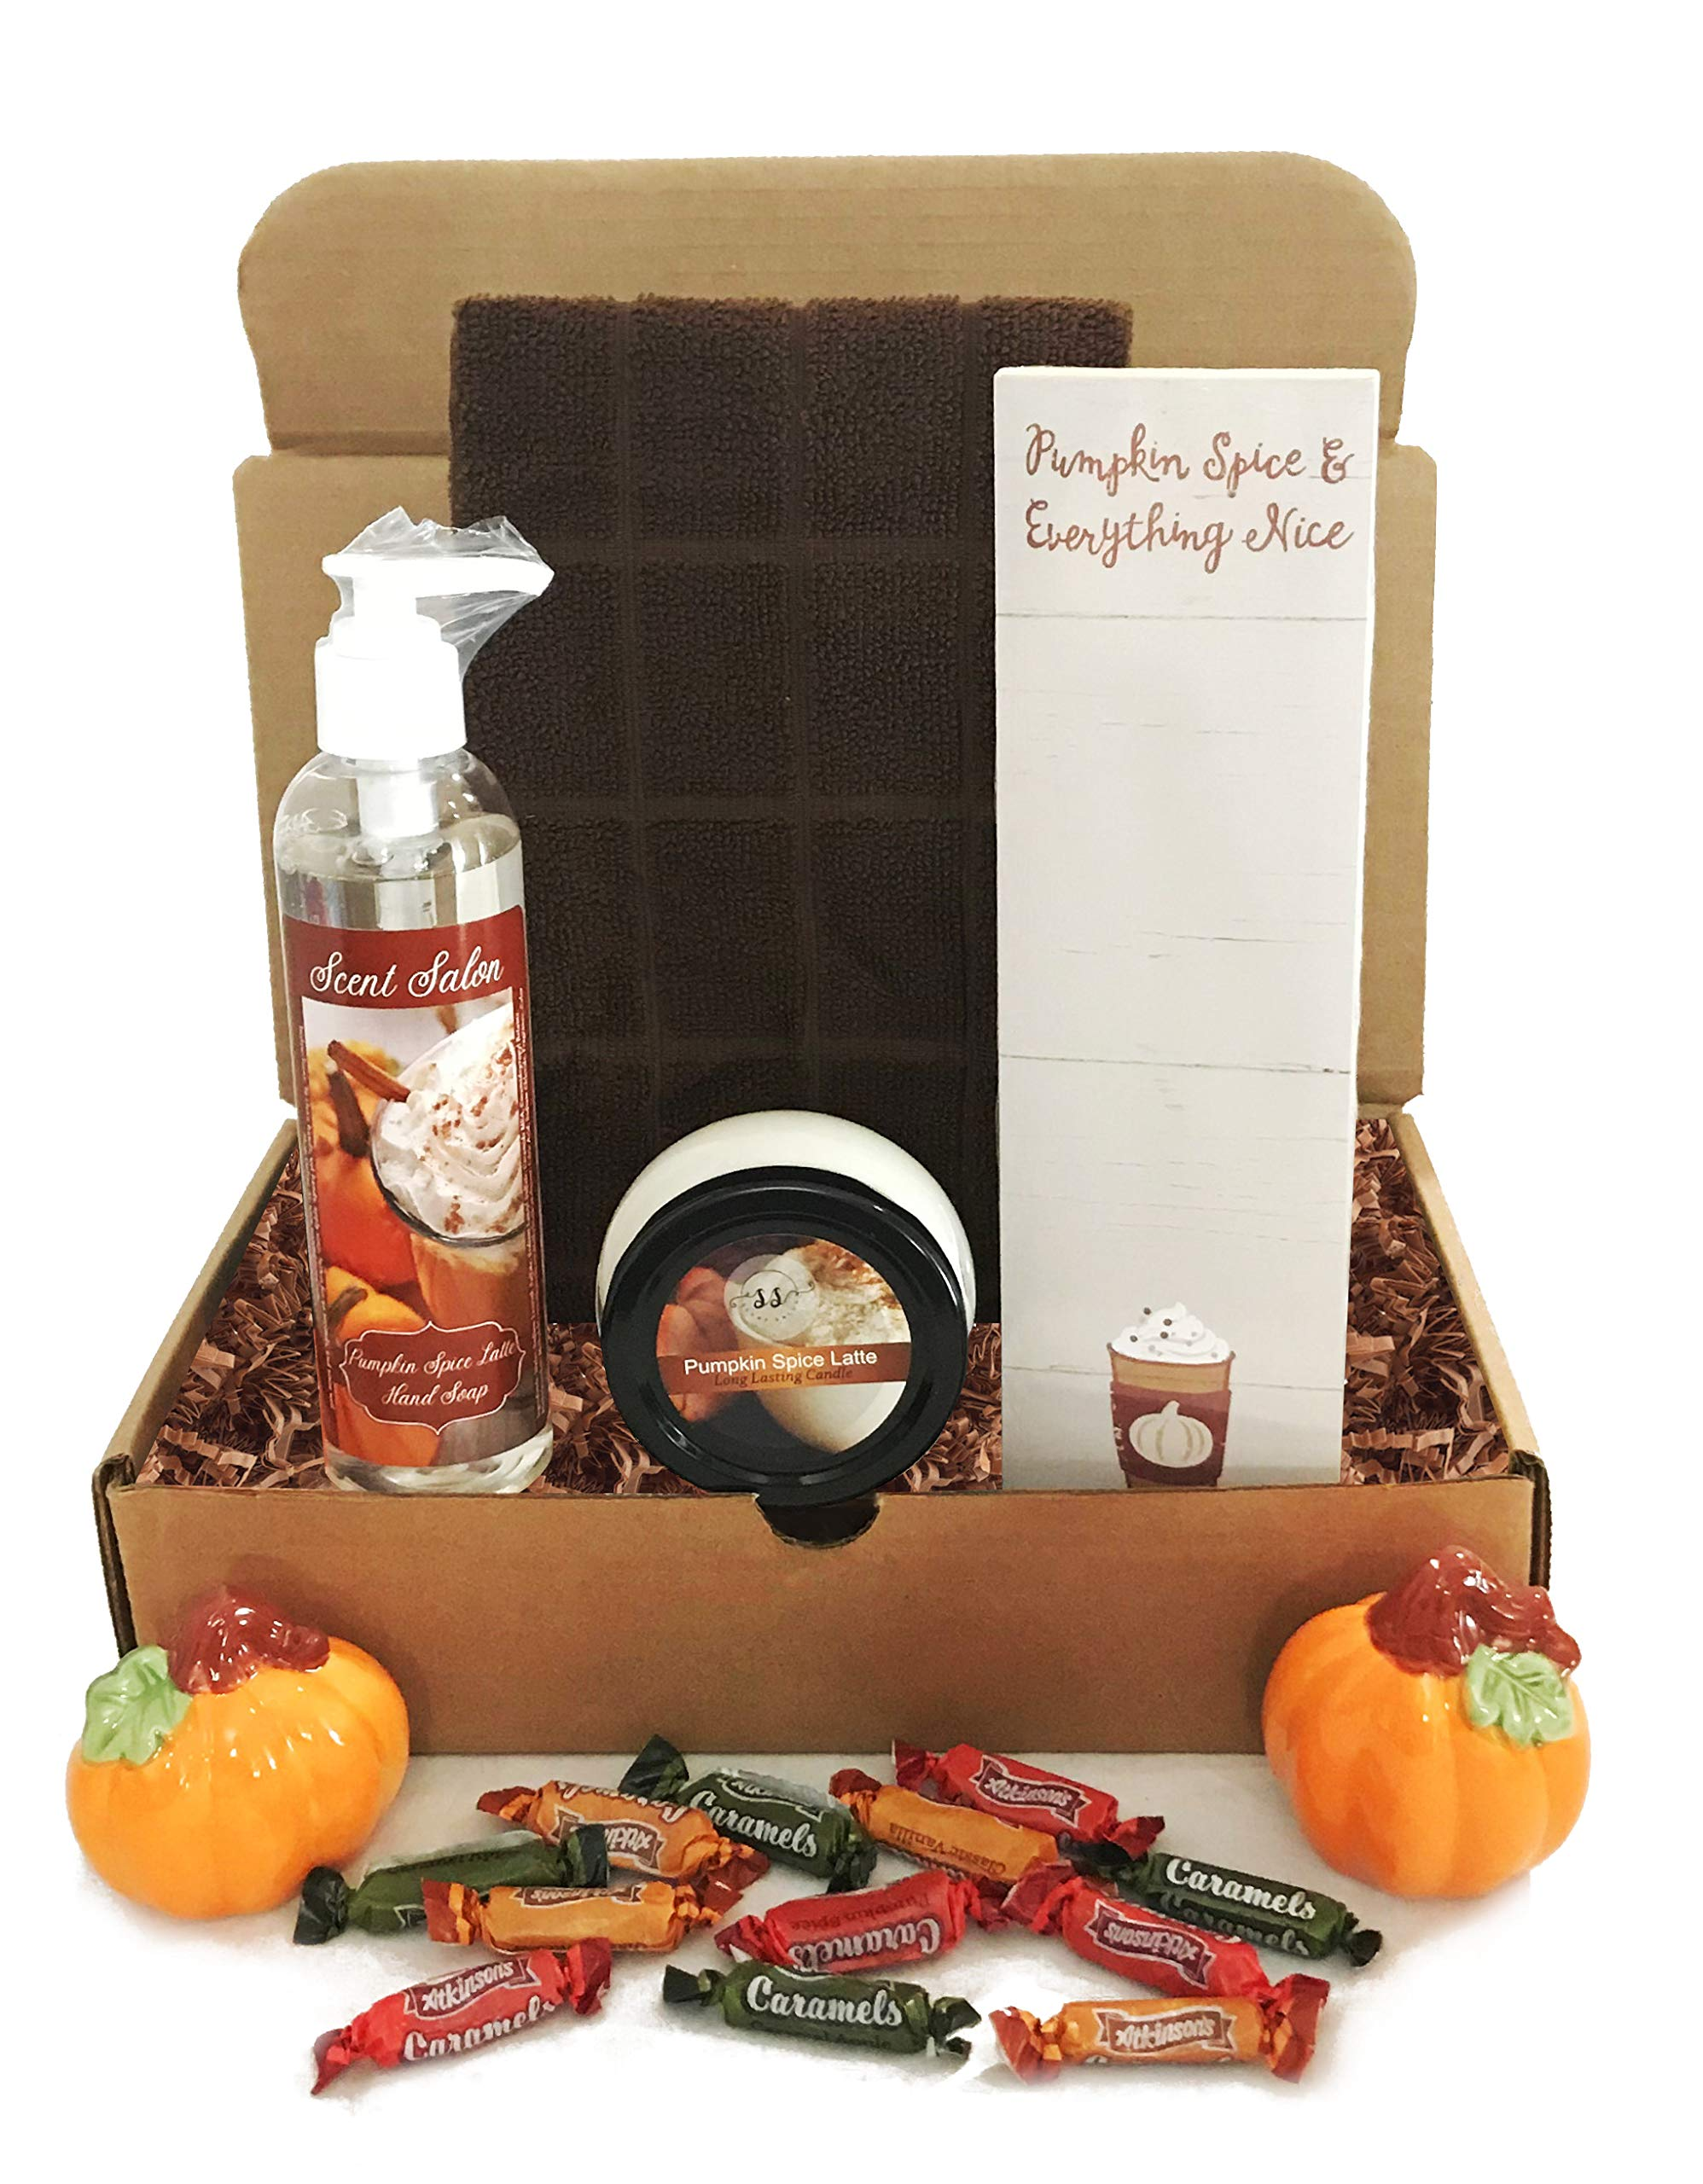 Fall Scented Candle and Fall Soap Sets - Apple Cinnamon Or Pumpkin Spice Latte - Fall Gift Basket for Teachers, Hostess, Housewarming Gifts, Care Packages (Pumpkin Spice Latte) by Golden Gift Box